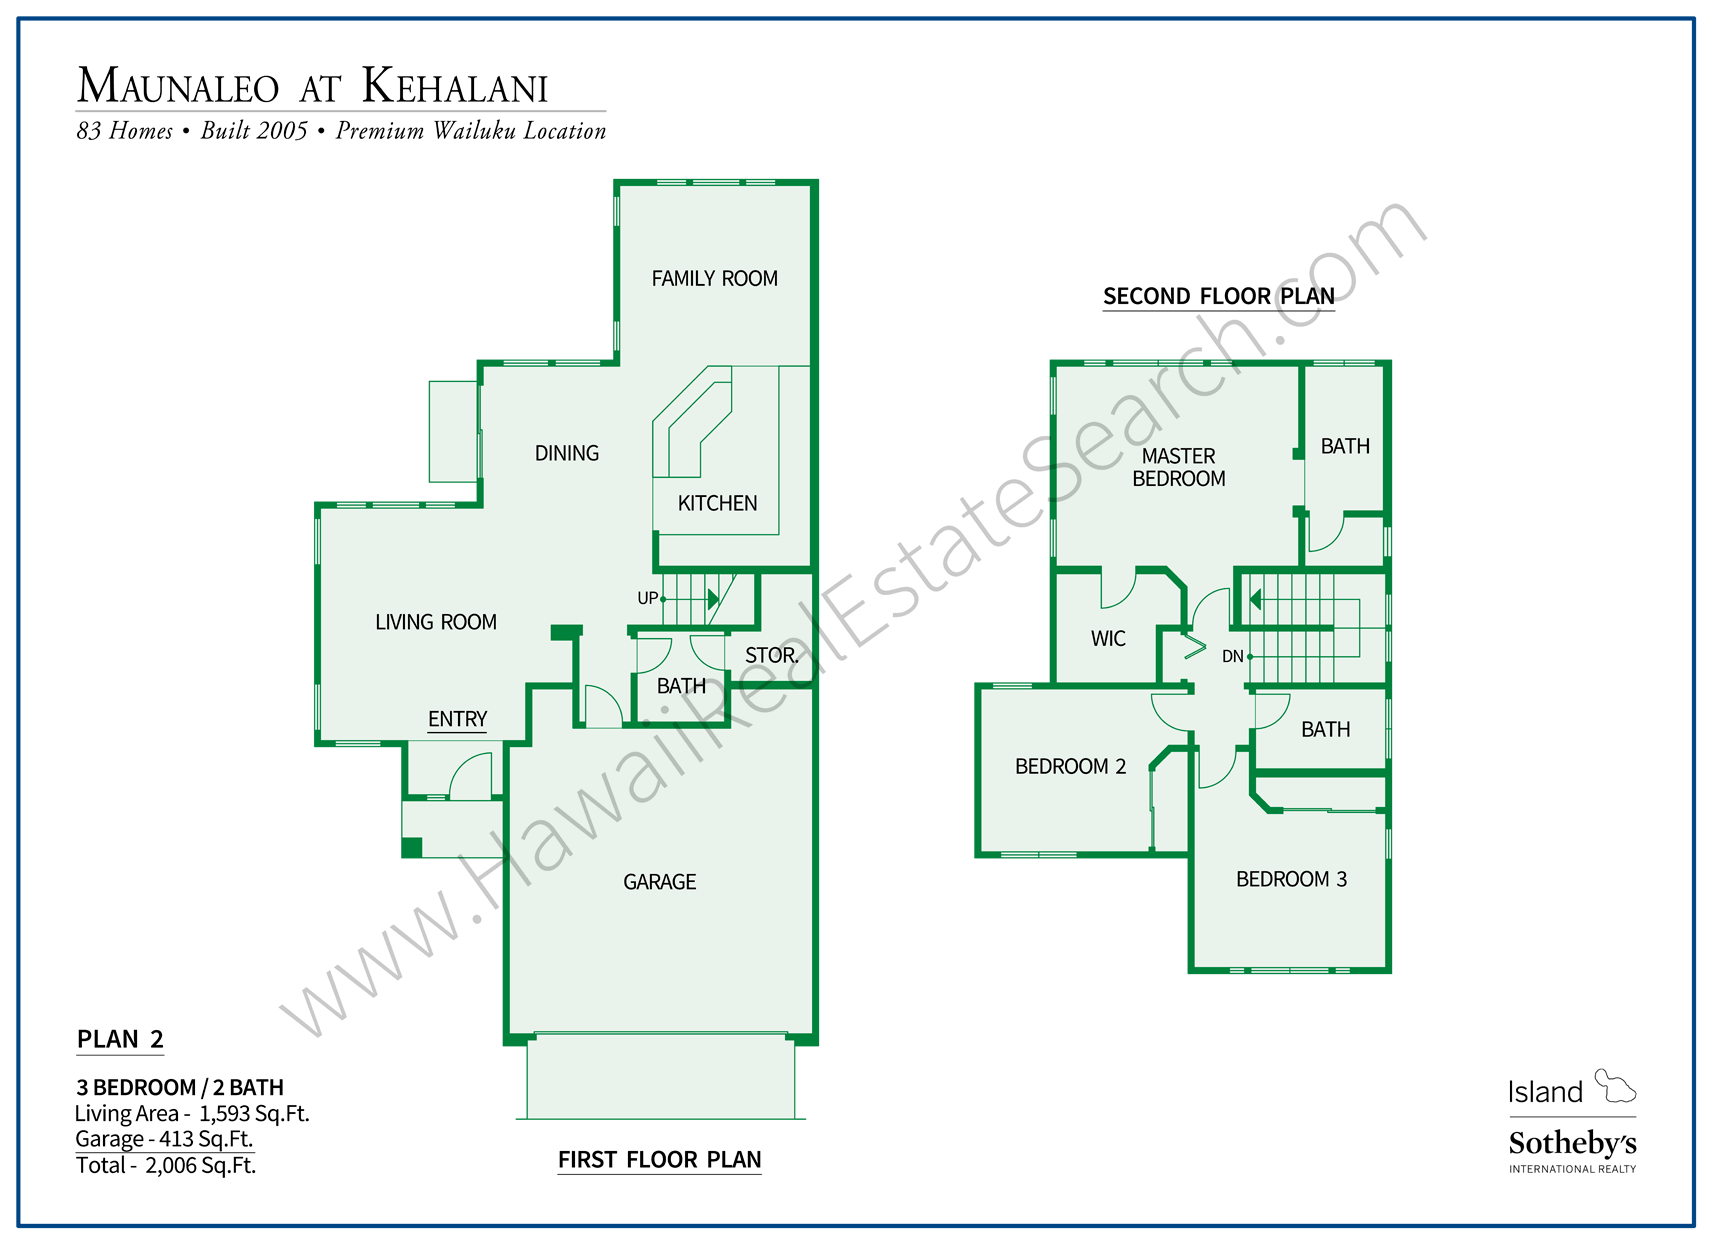 Floor Plan of Maunaleo at Kehalani Home